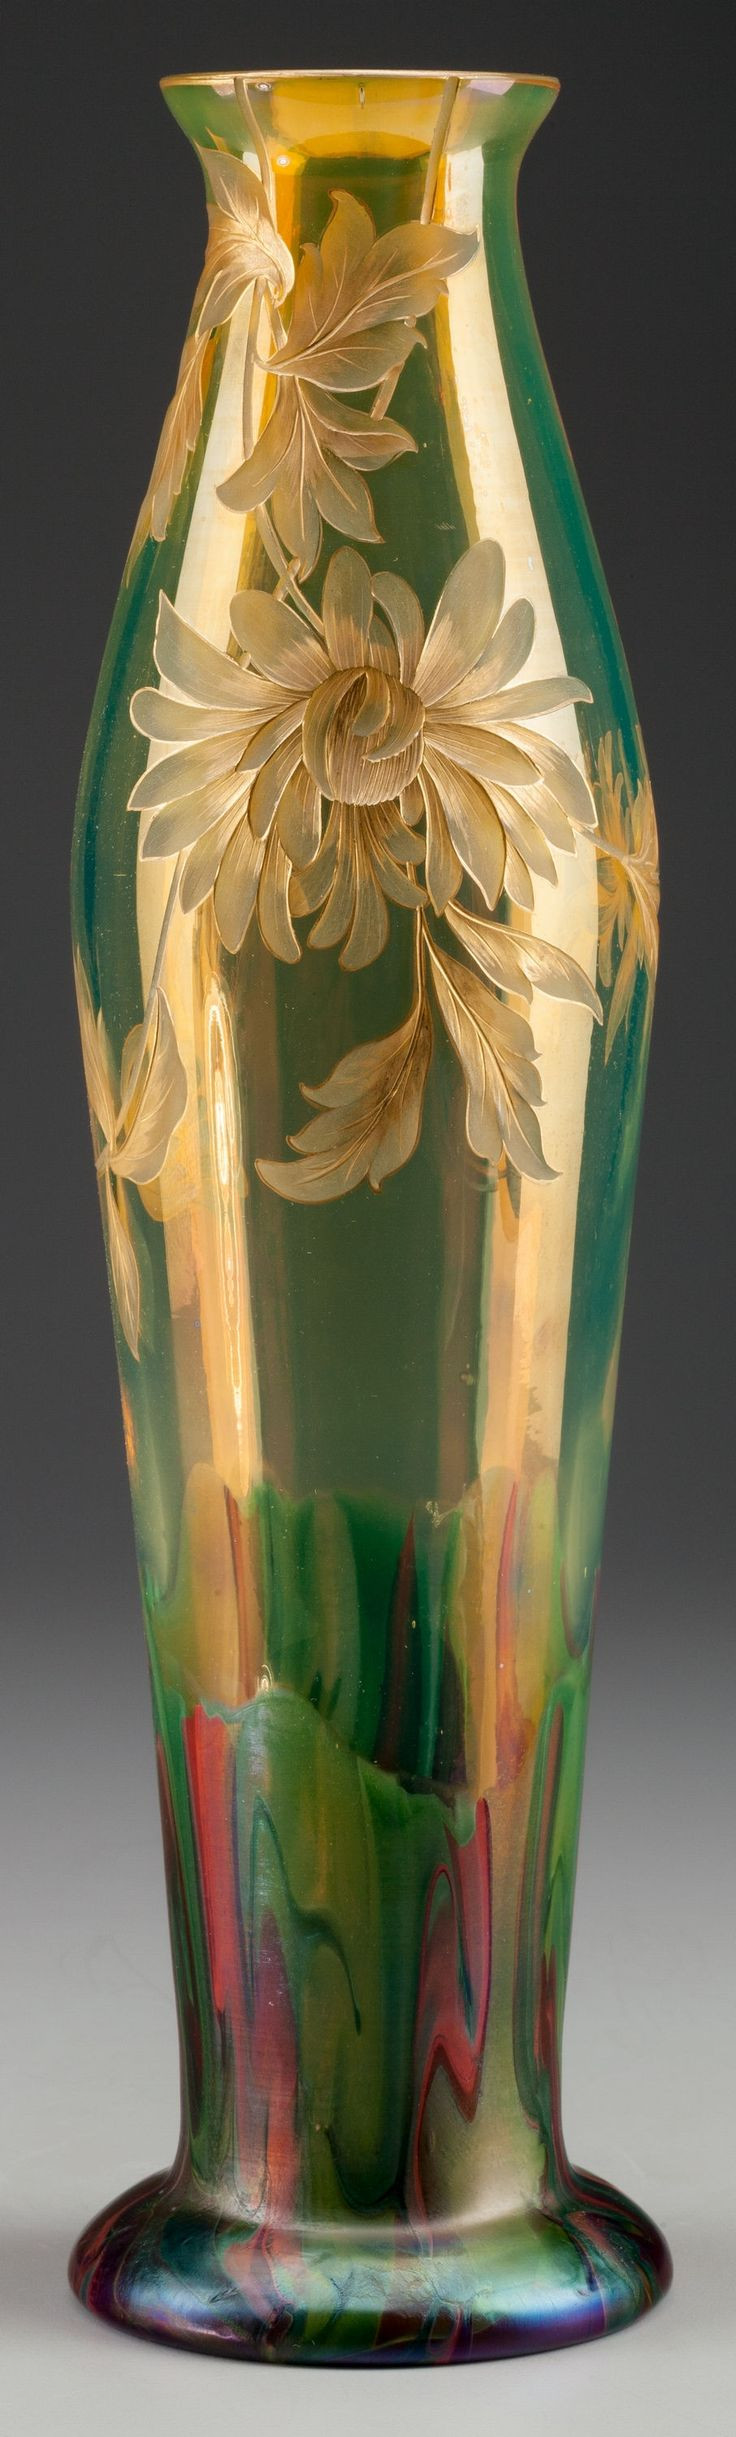 san miguel recycled glass vase of 3034 best household items images on pinterest antique silver in rare graf harrach enameled and engraved opalescent glass floralvase circa marked g